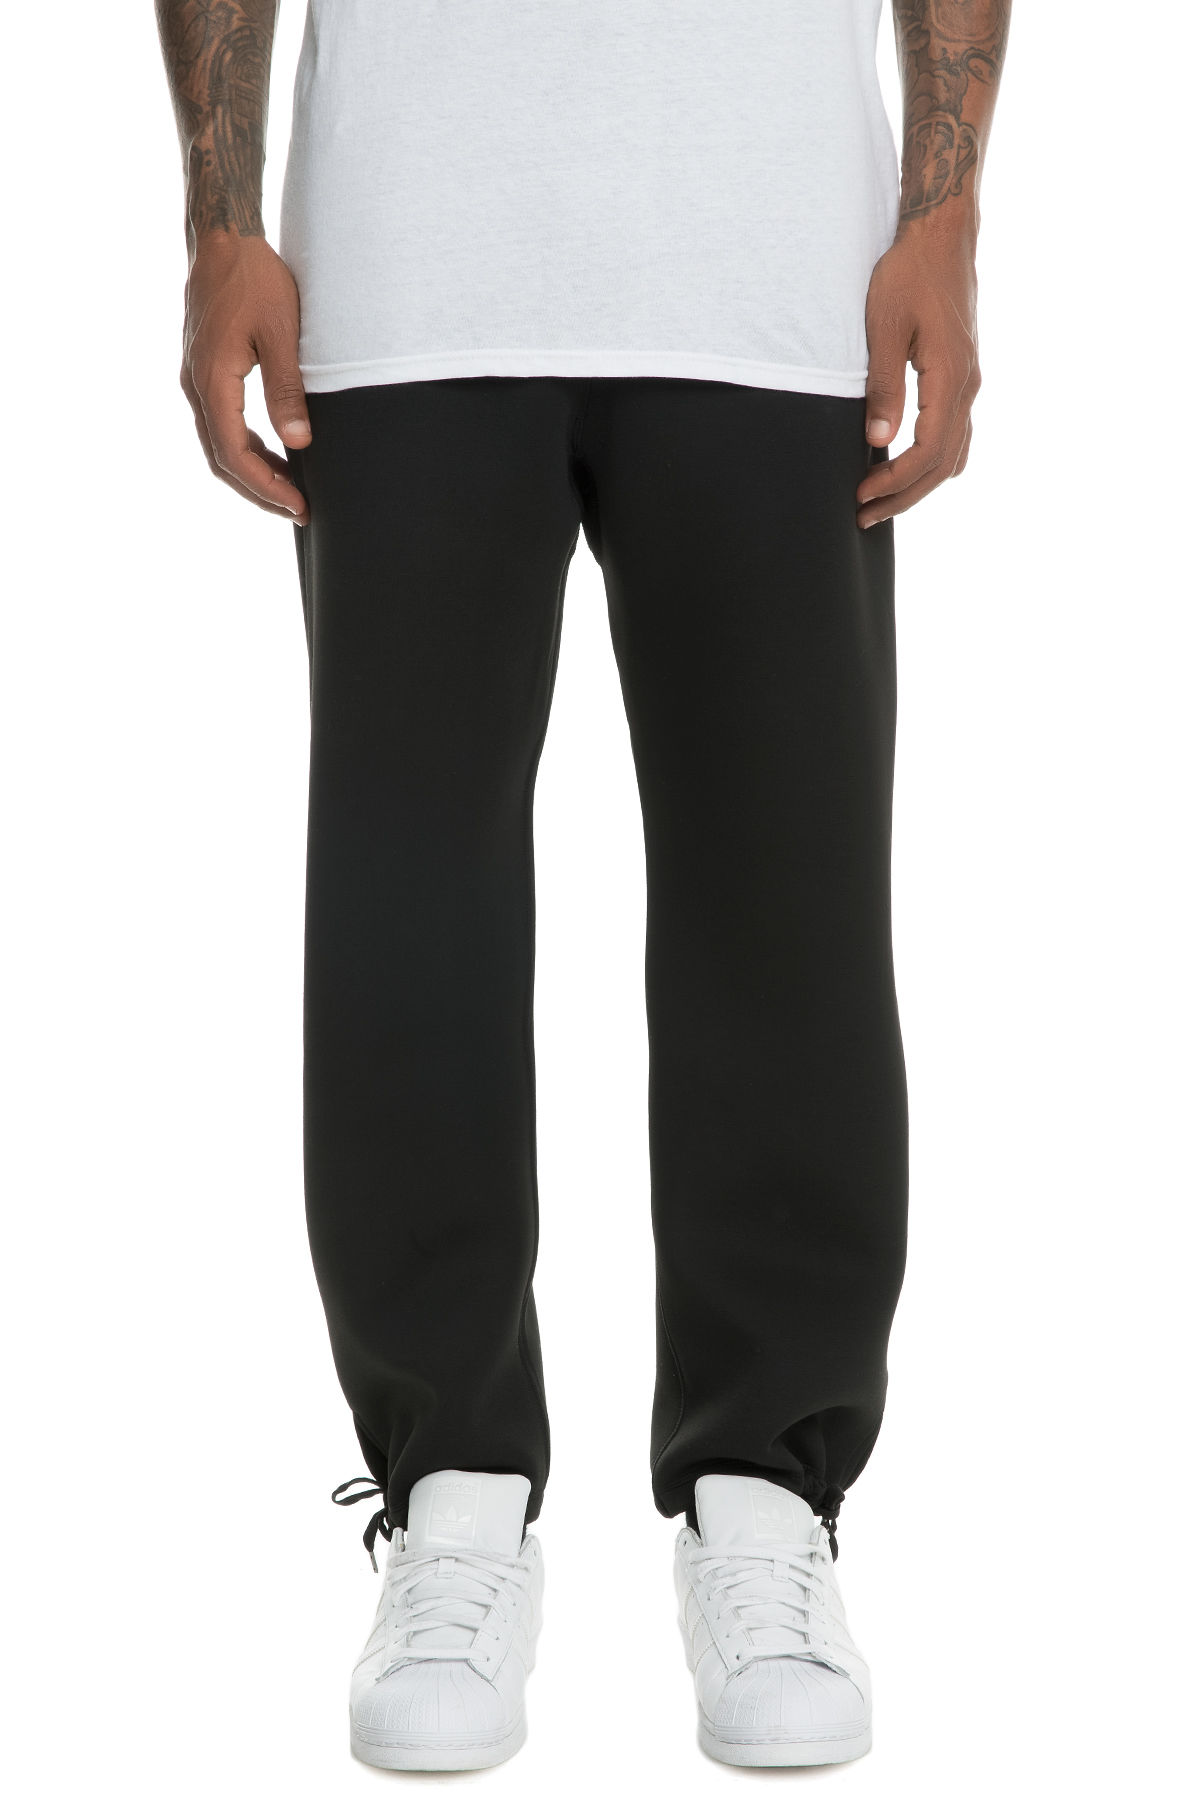 Image of The Pro Track Pants in Black